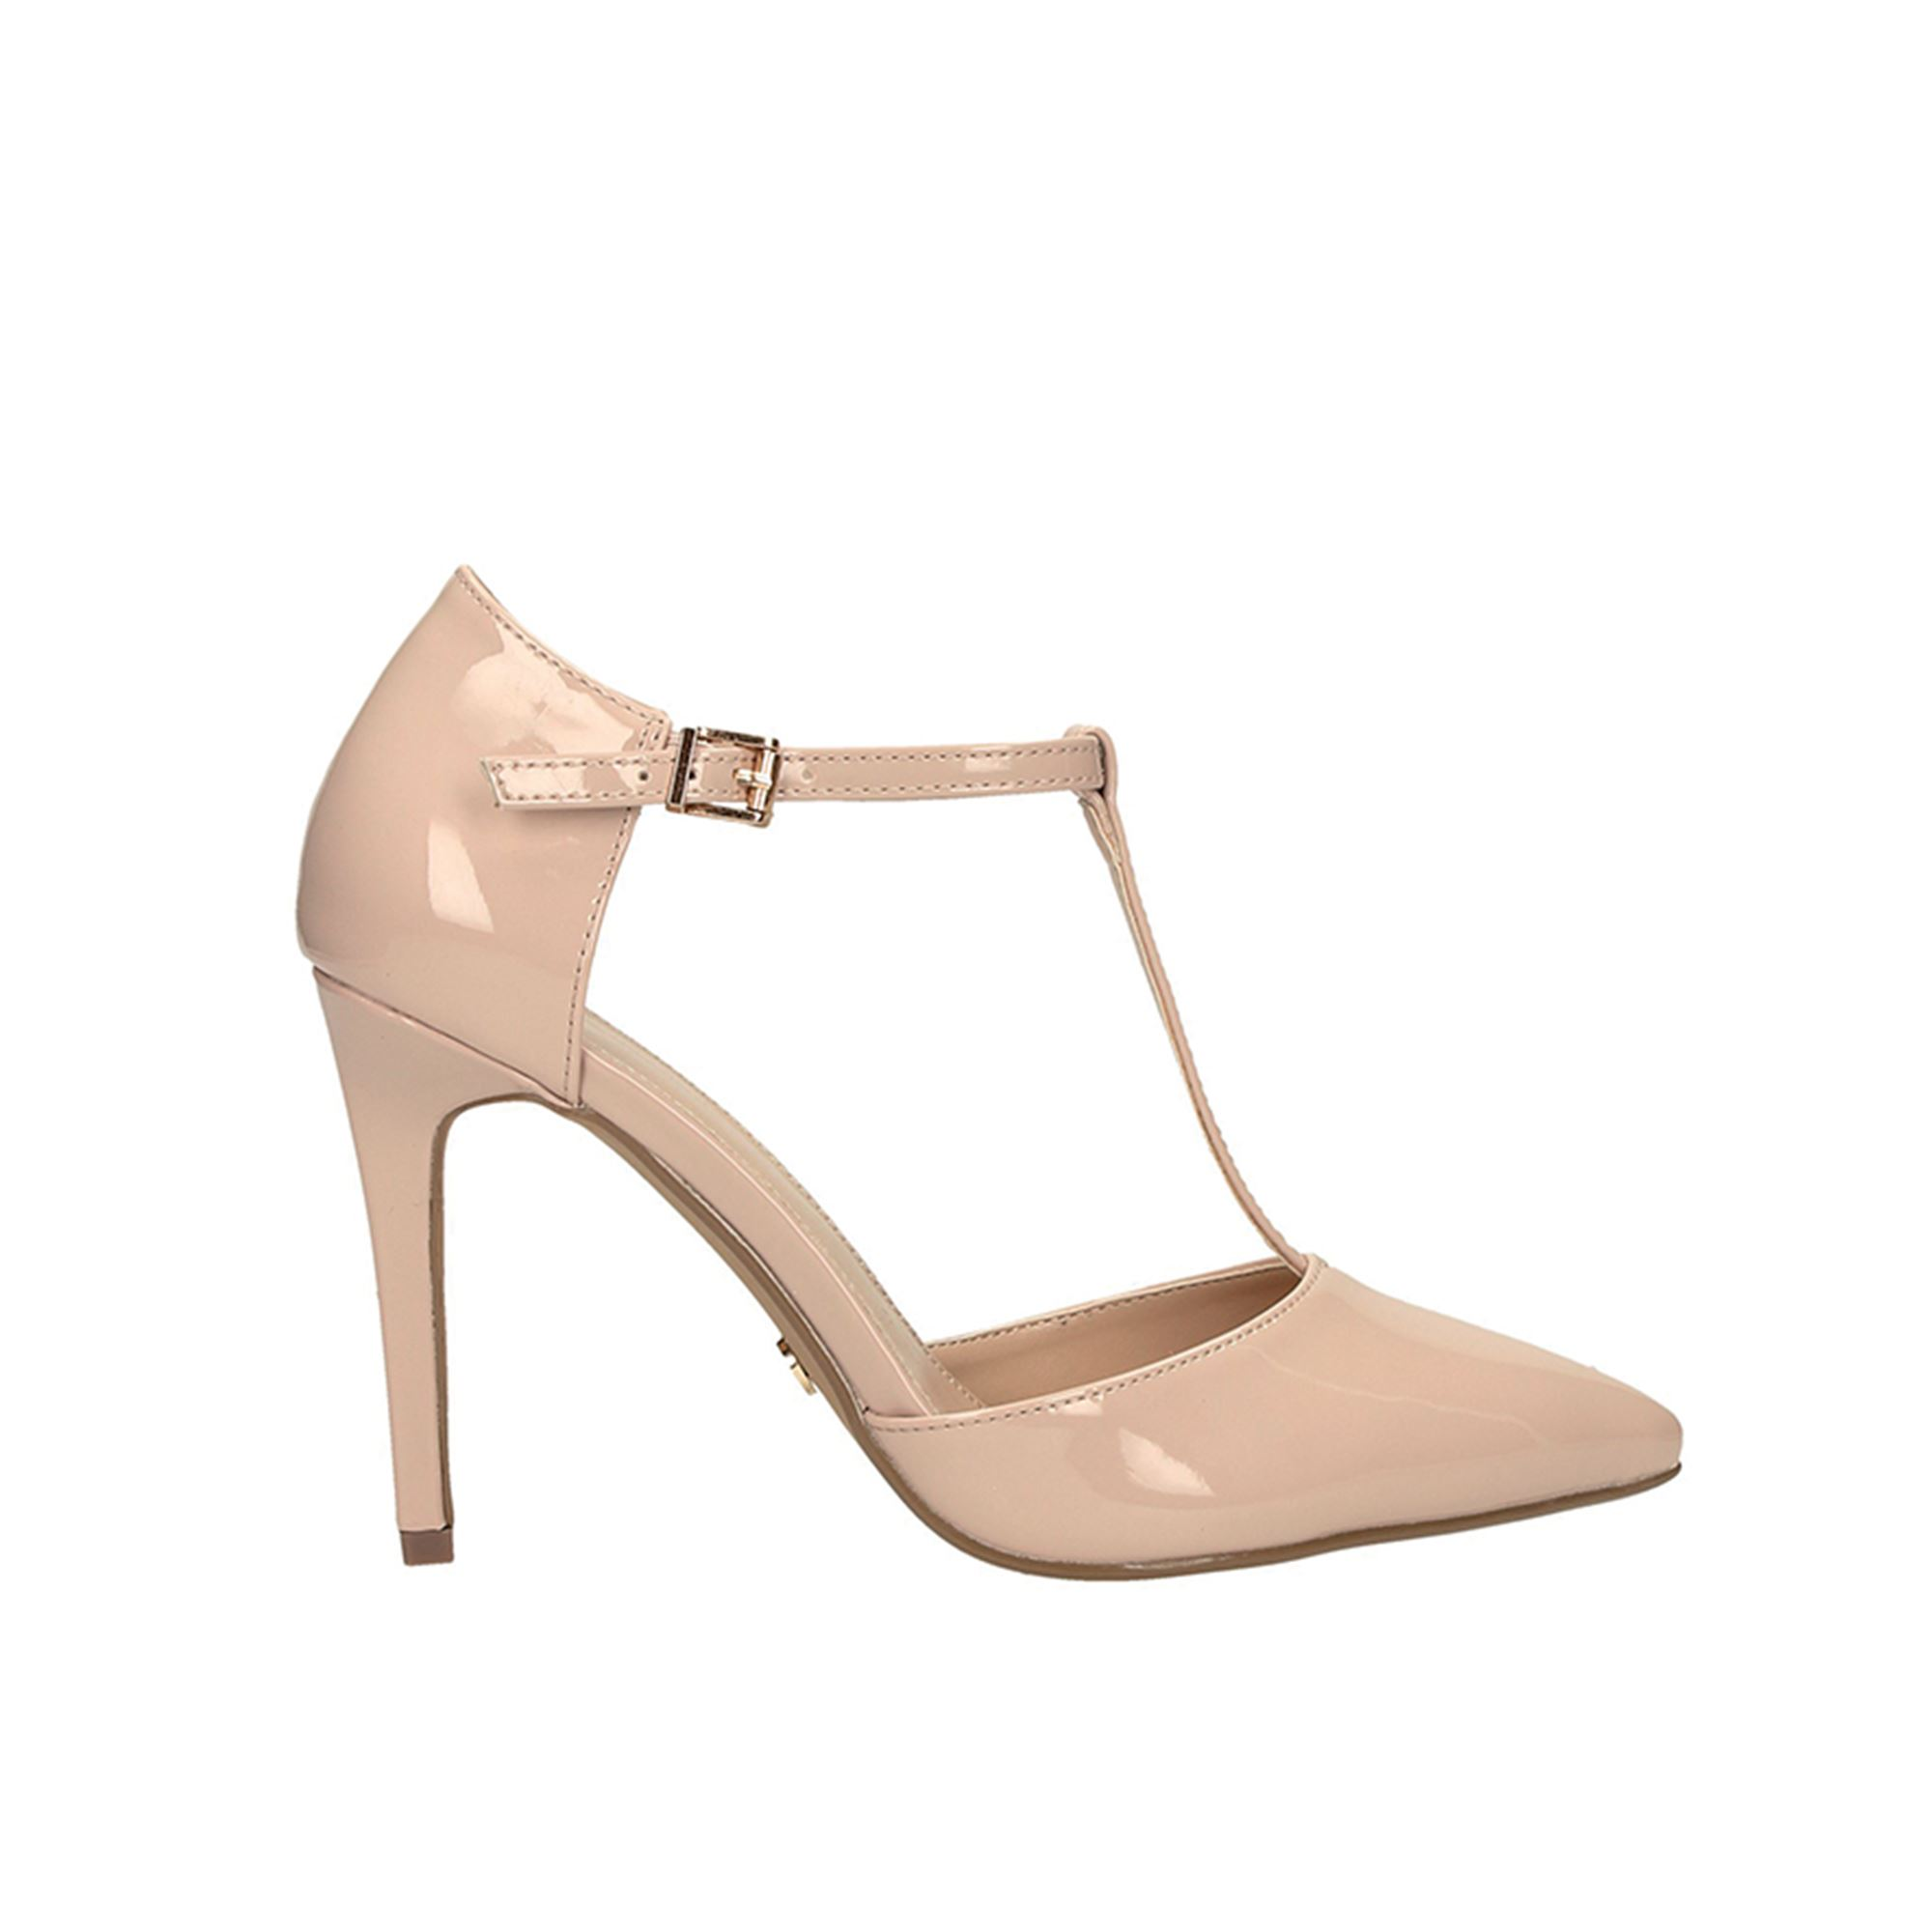 Tata Italia Shoes Woman Décolleté Beige 9205A-8/E18